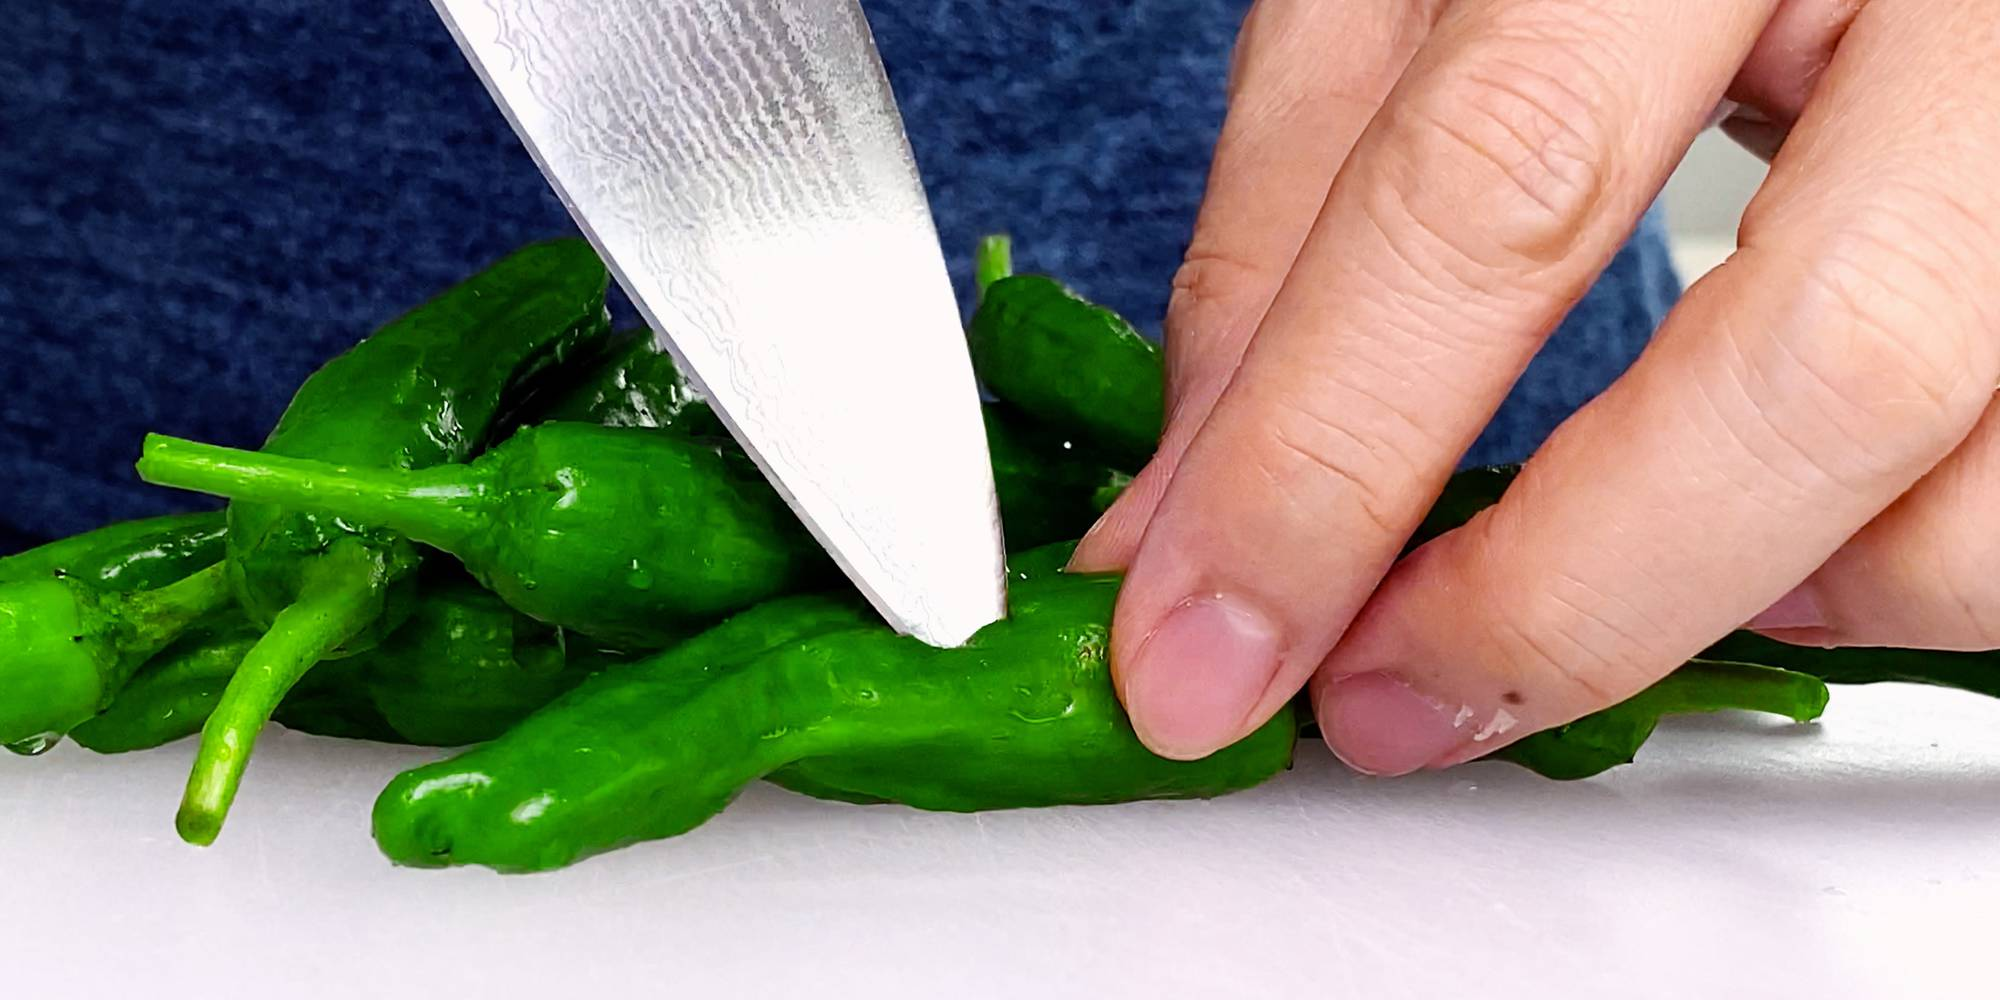 Poking holes in peppers to keep them from popping.